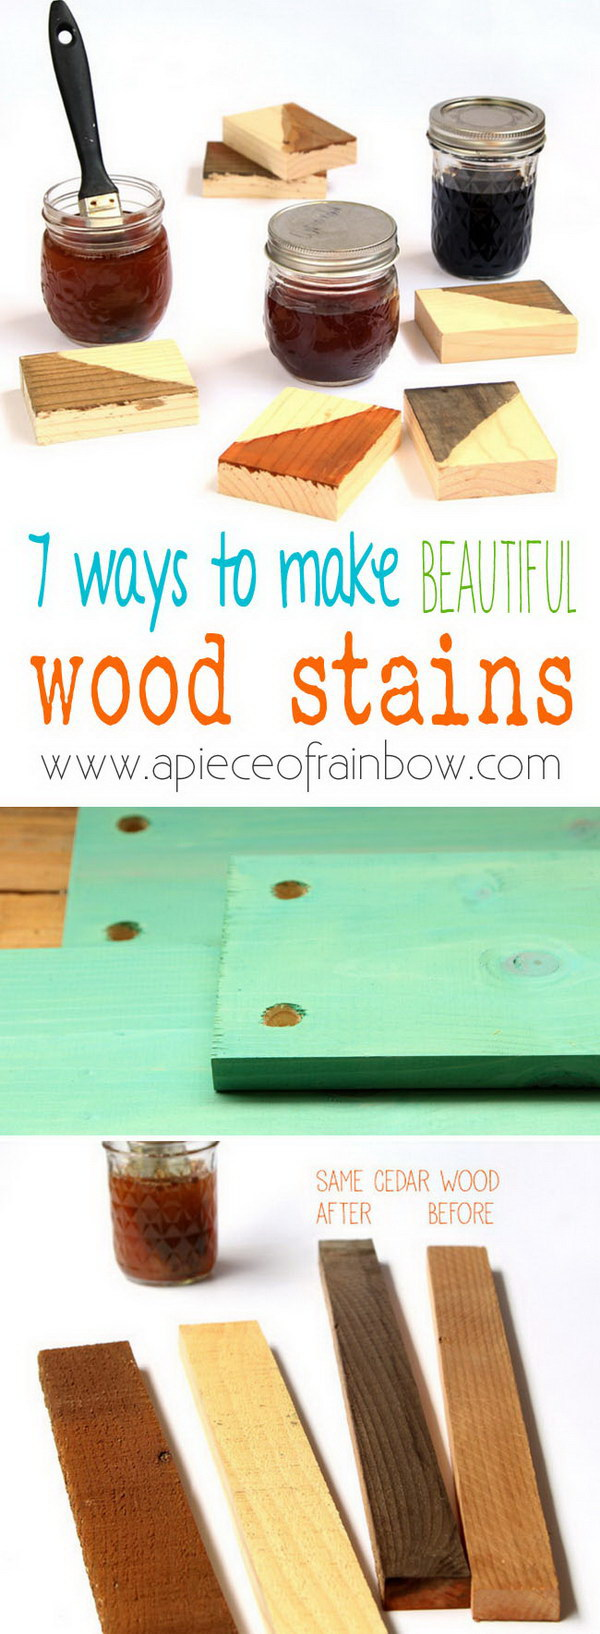 15 Homemade Natural & Effective Wood Stains